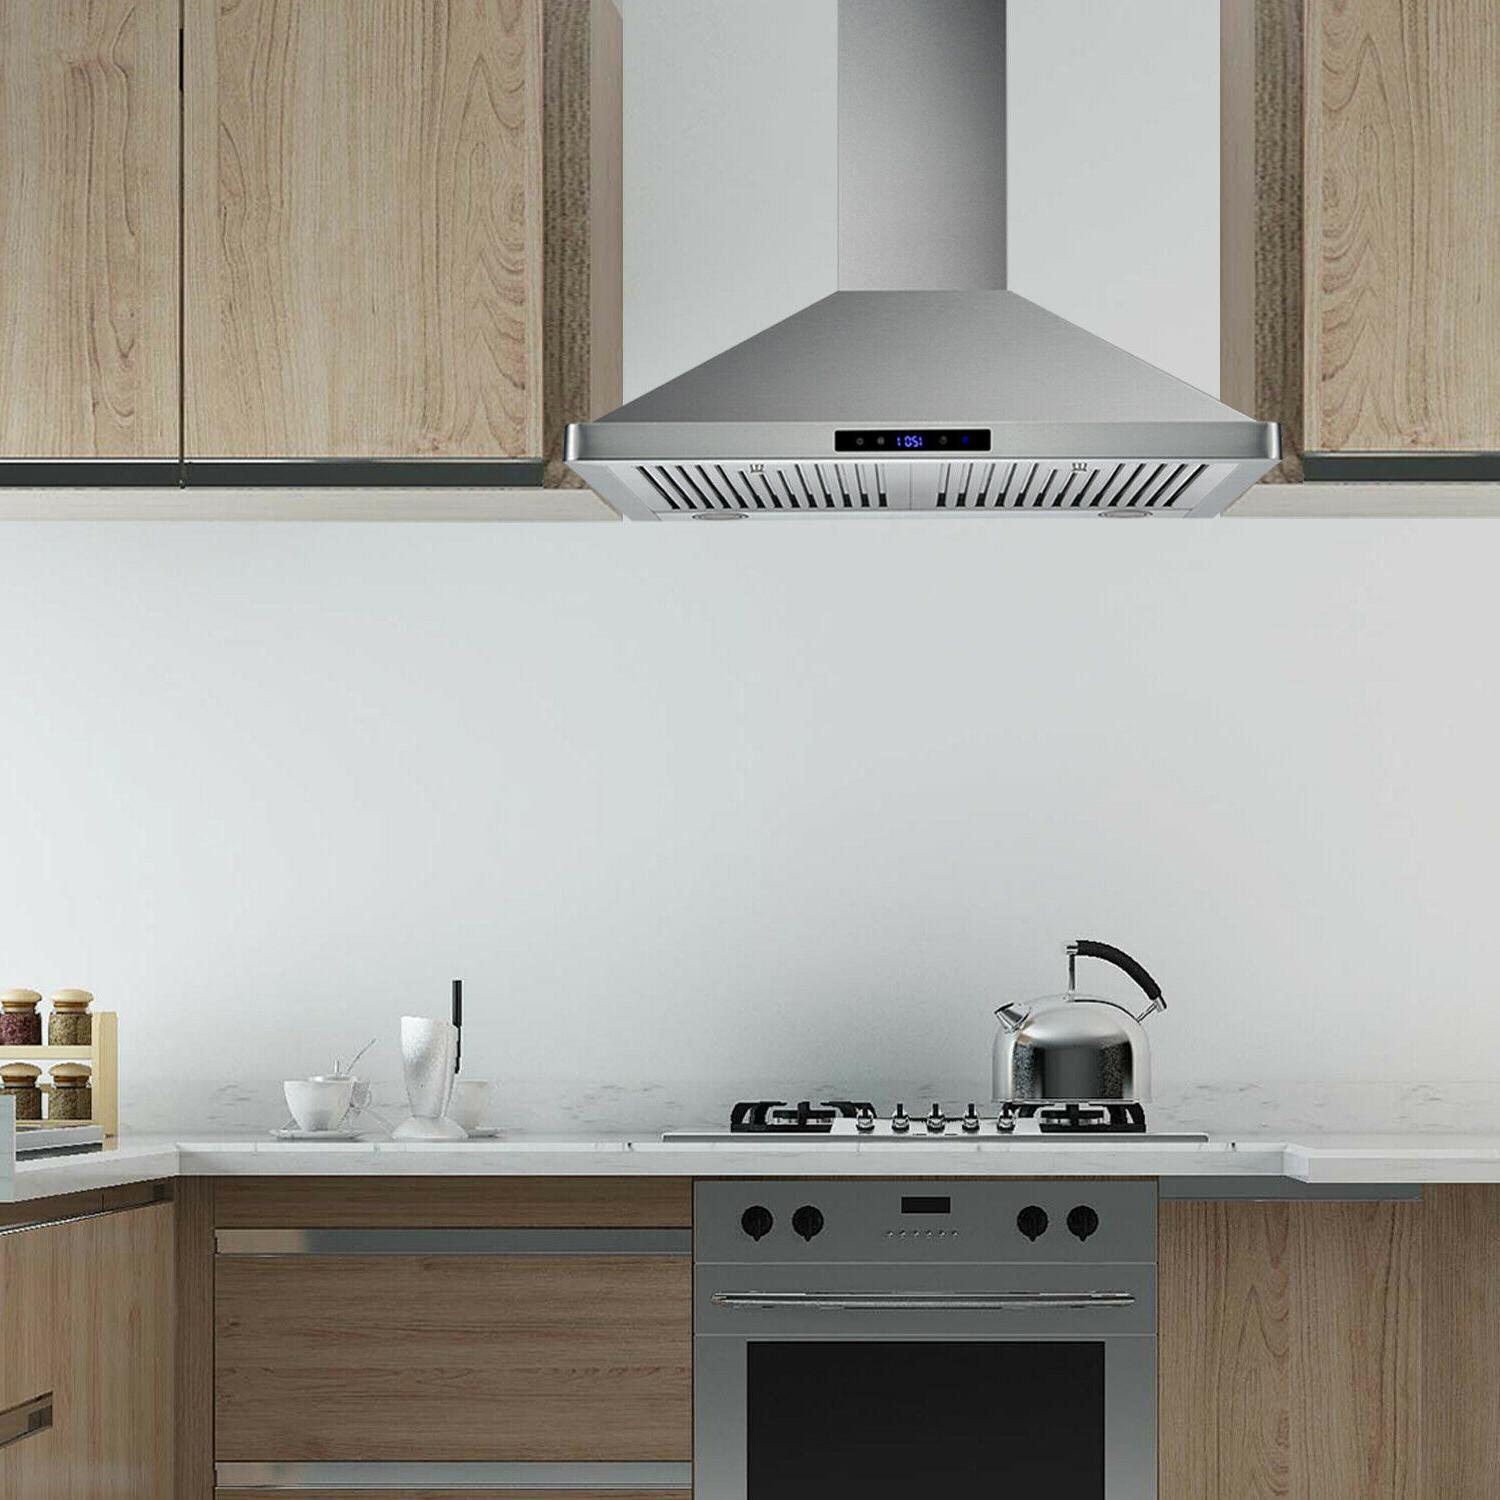 30 inch Wall Mount Range Stainless Steel Cook Vent